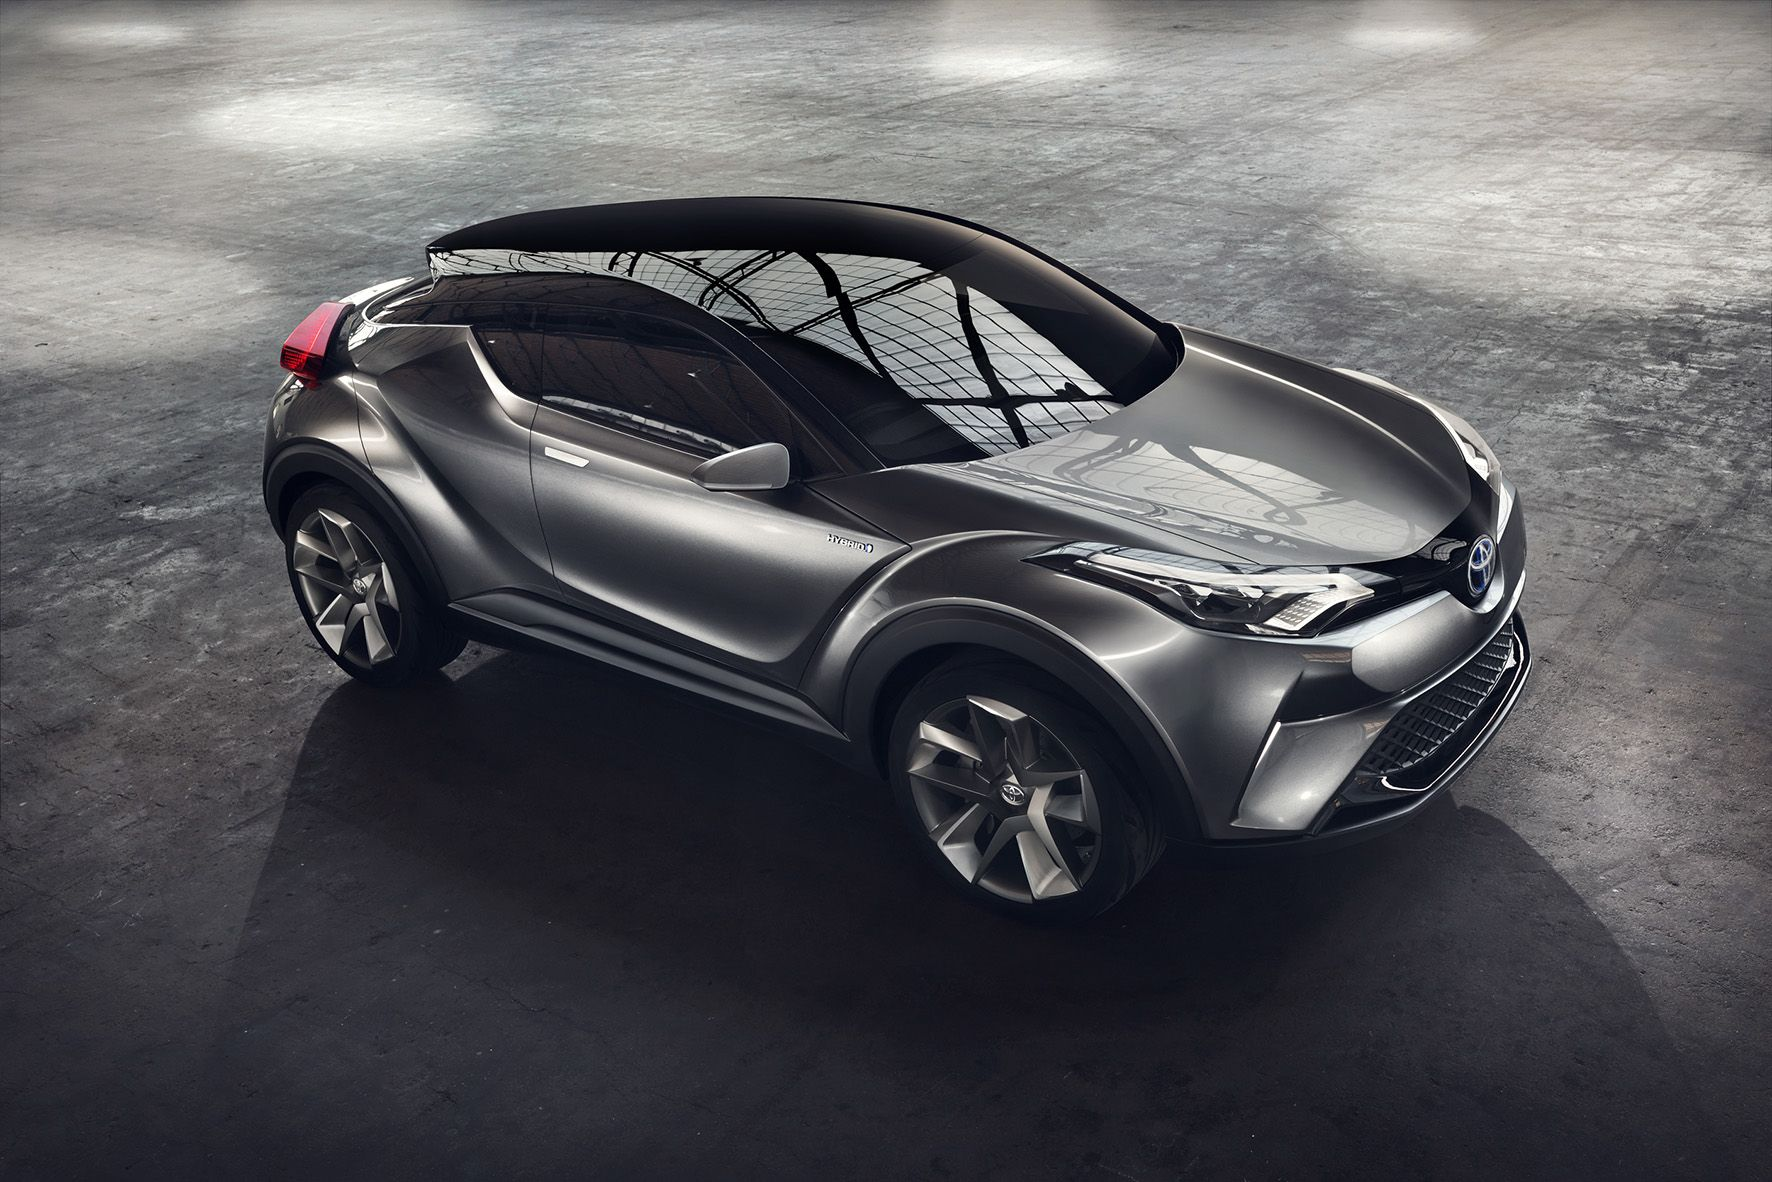 toyota c hr concept two design exterior and interior 2017 youtube toyota c hr pinterest toyota and cars